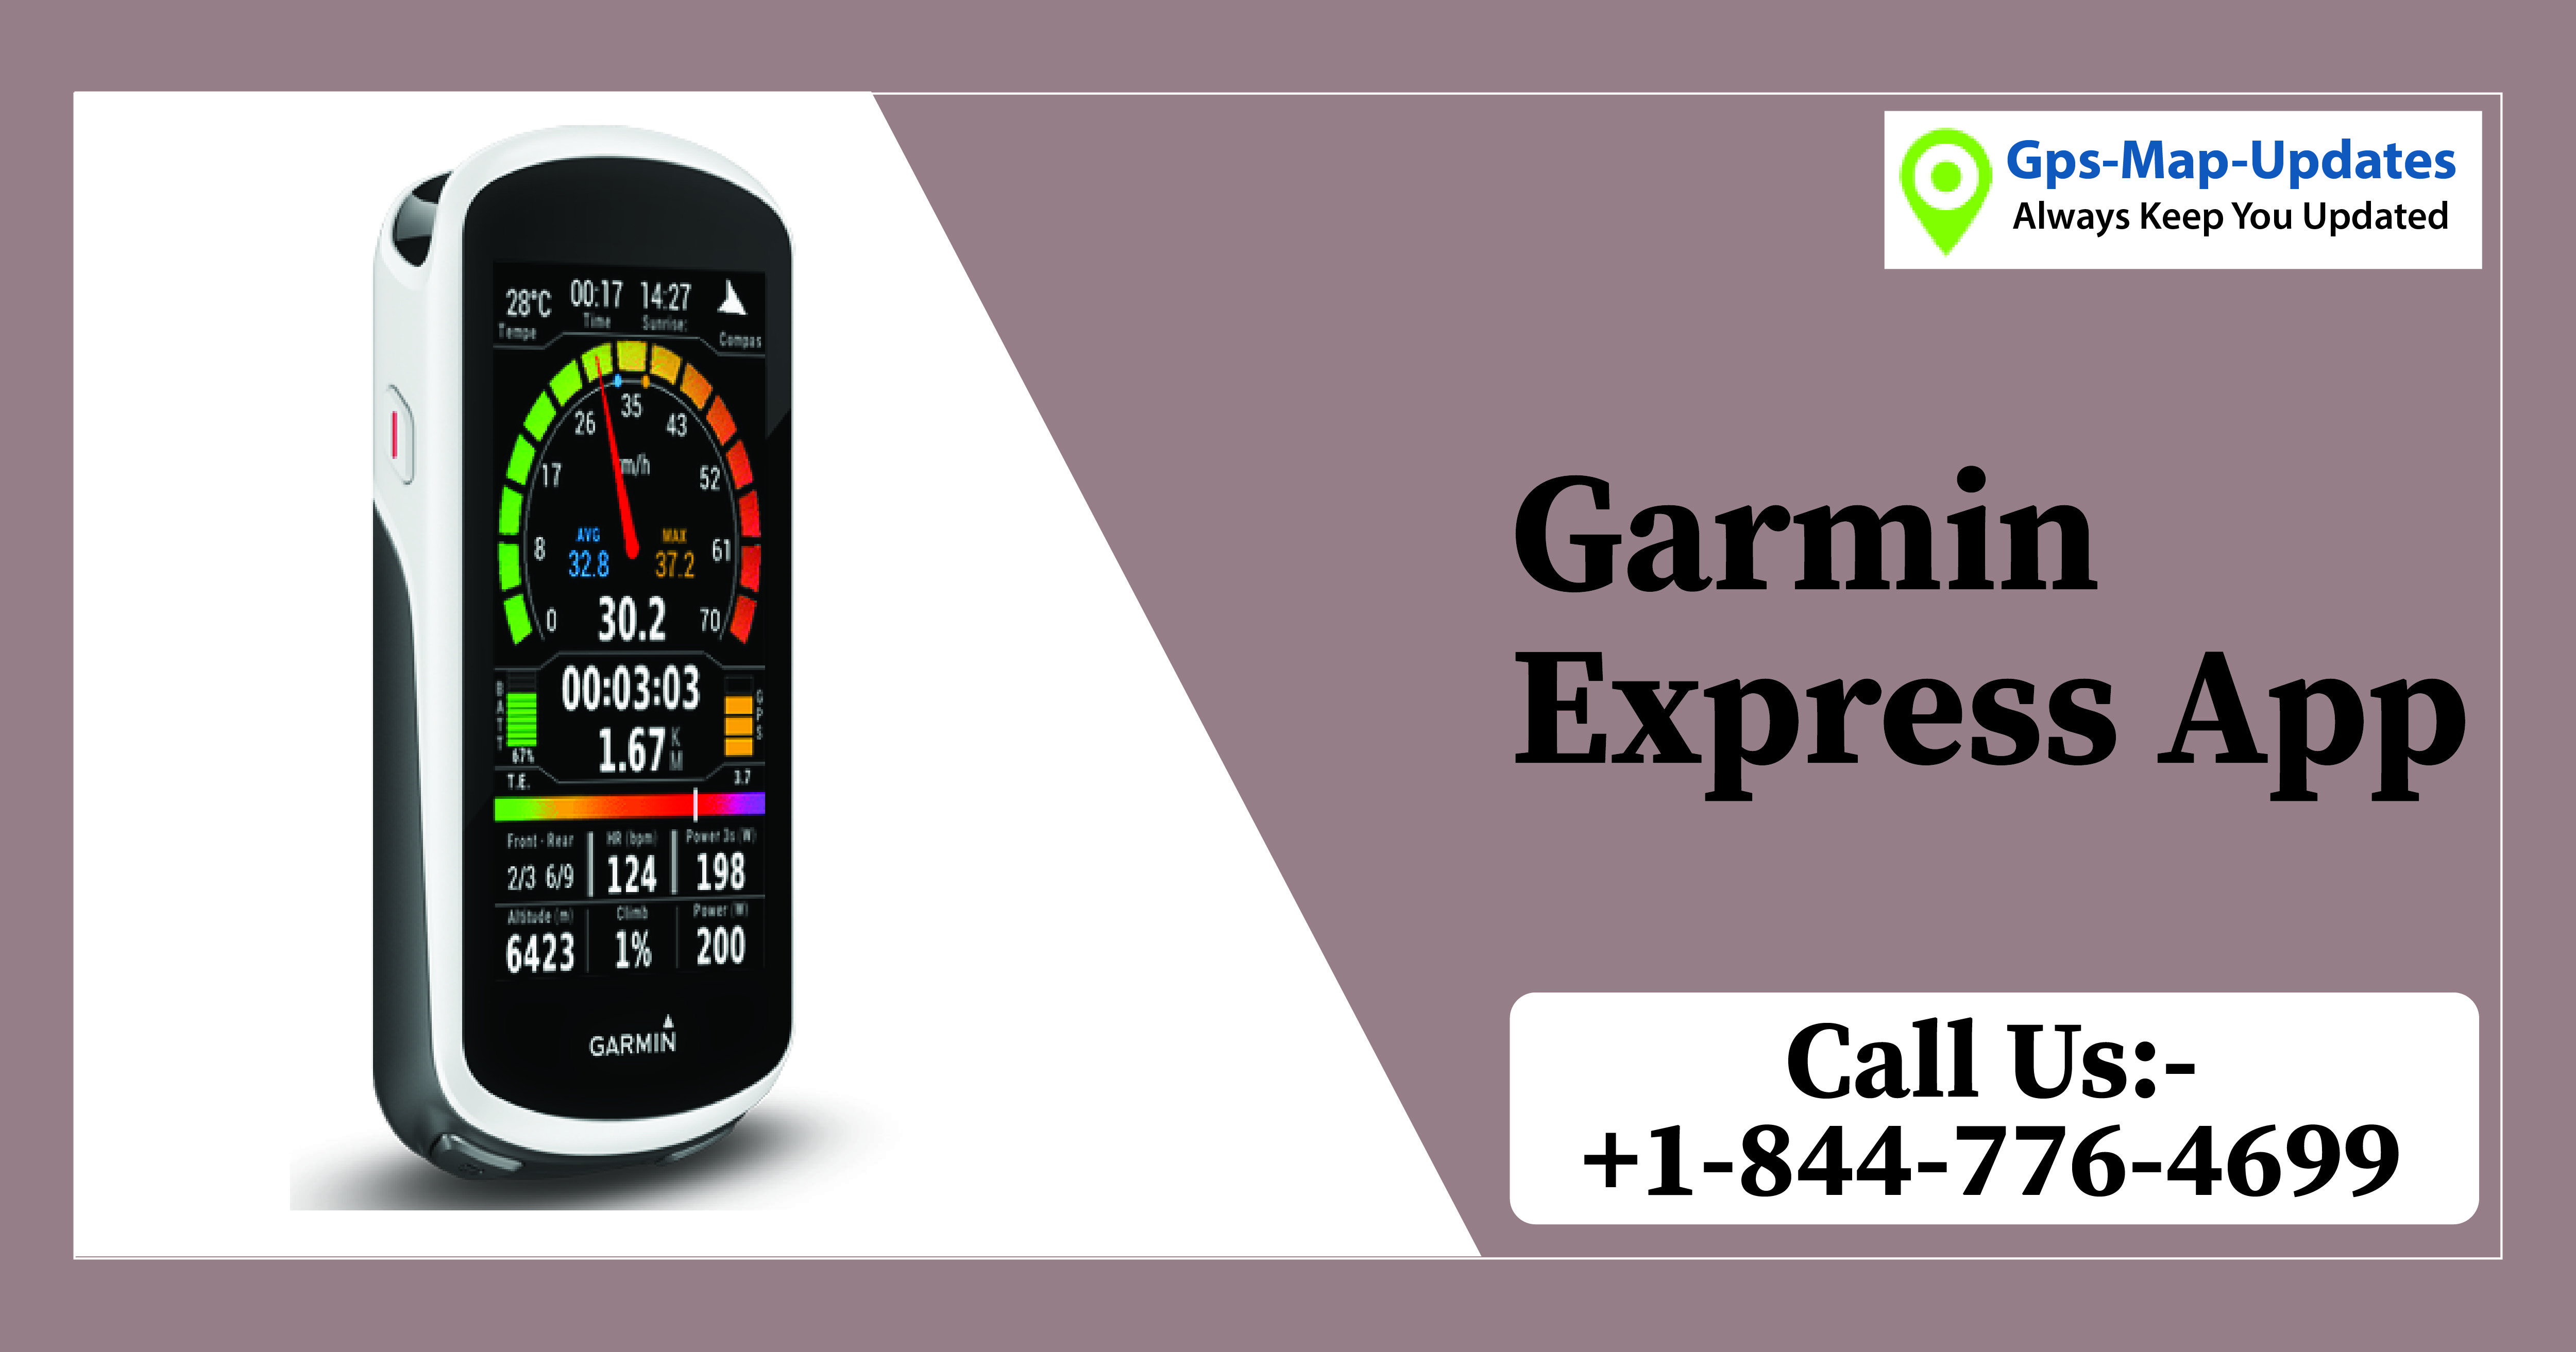 If you have any issue in your Garmin express app and need